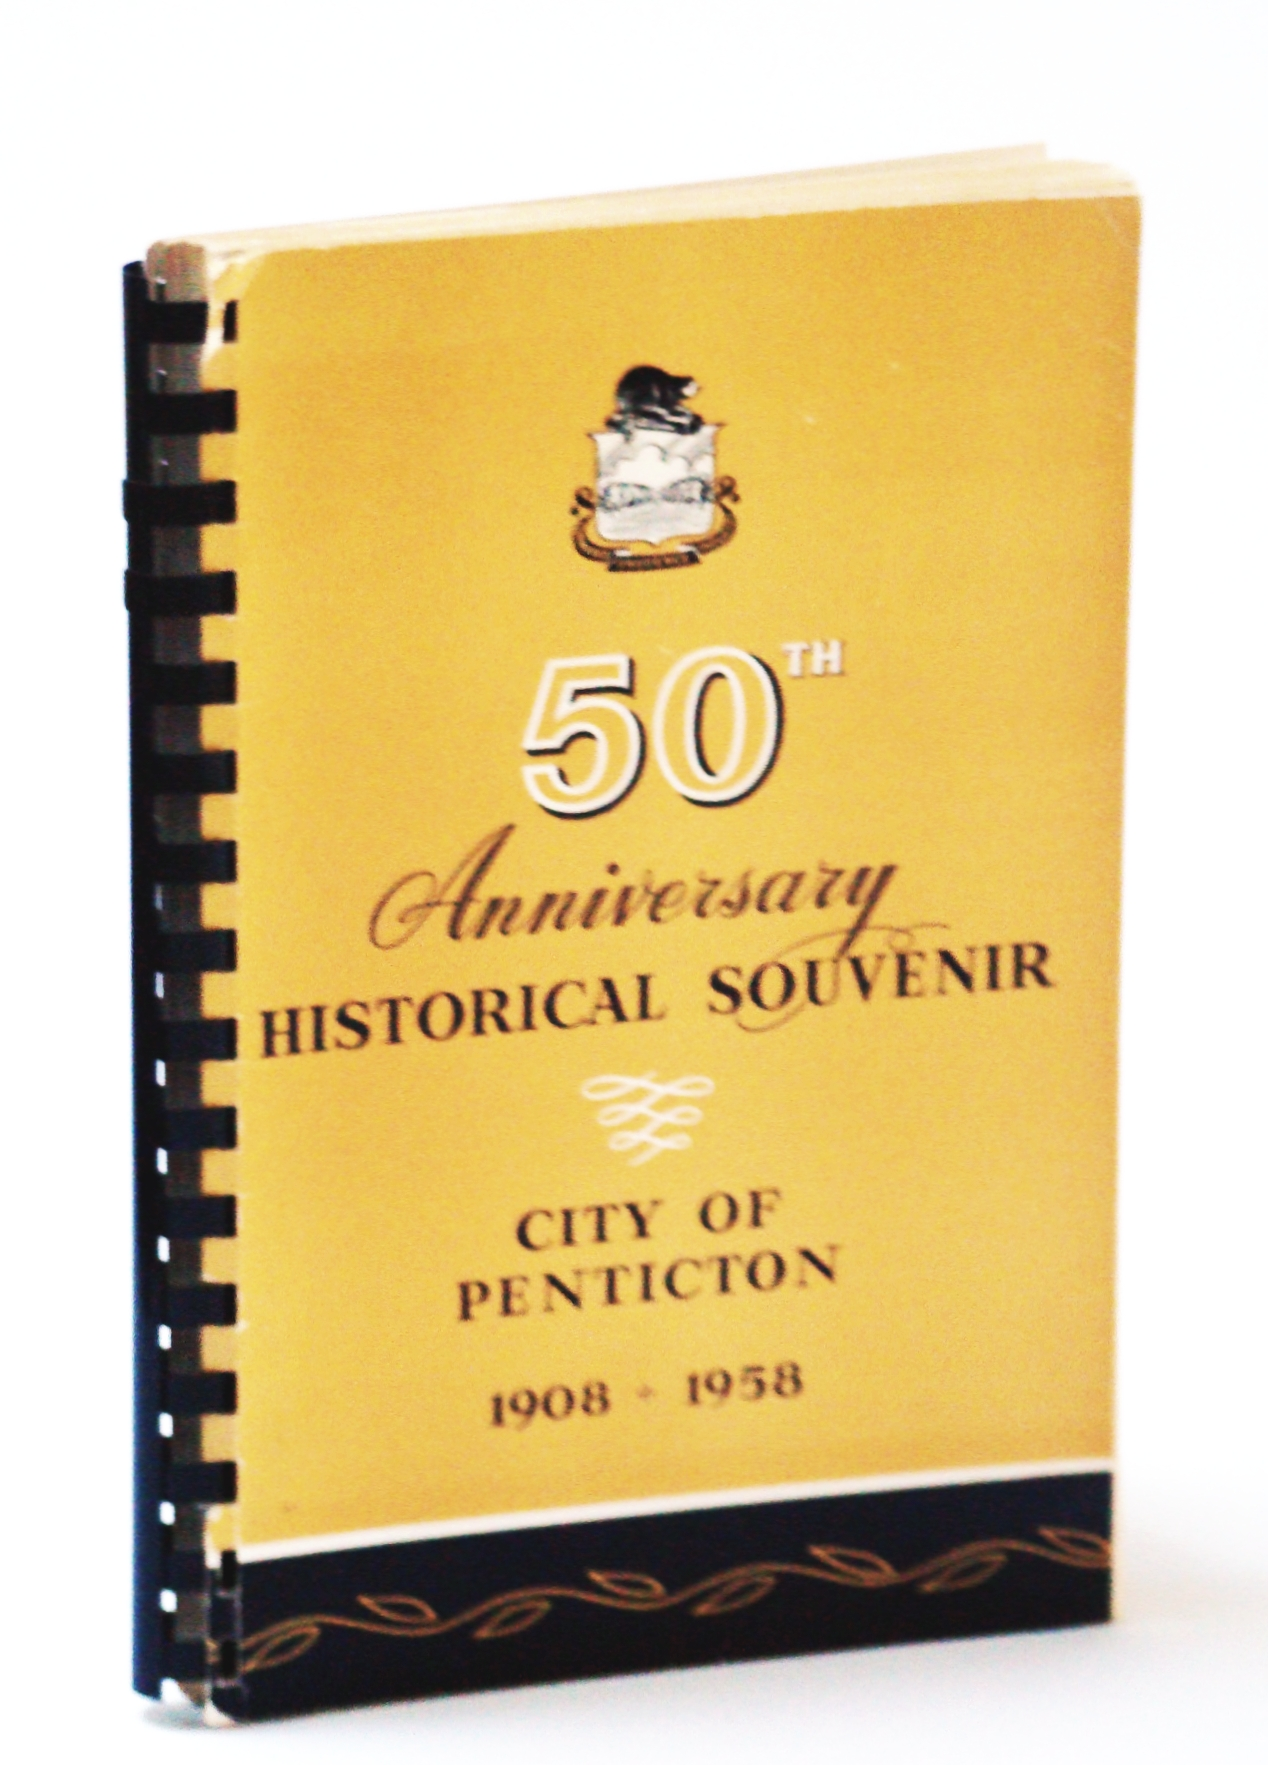 Image for Historical Souvenir of Penticton, B.C. 1908-1958 on the Occasion of the City of Penticton's Golden Jubilee